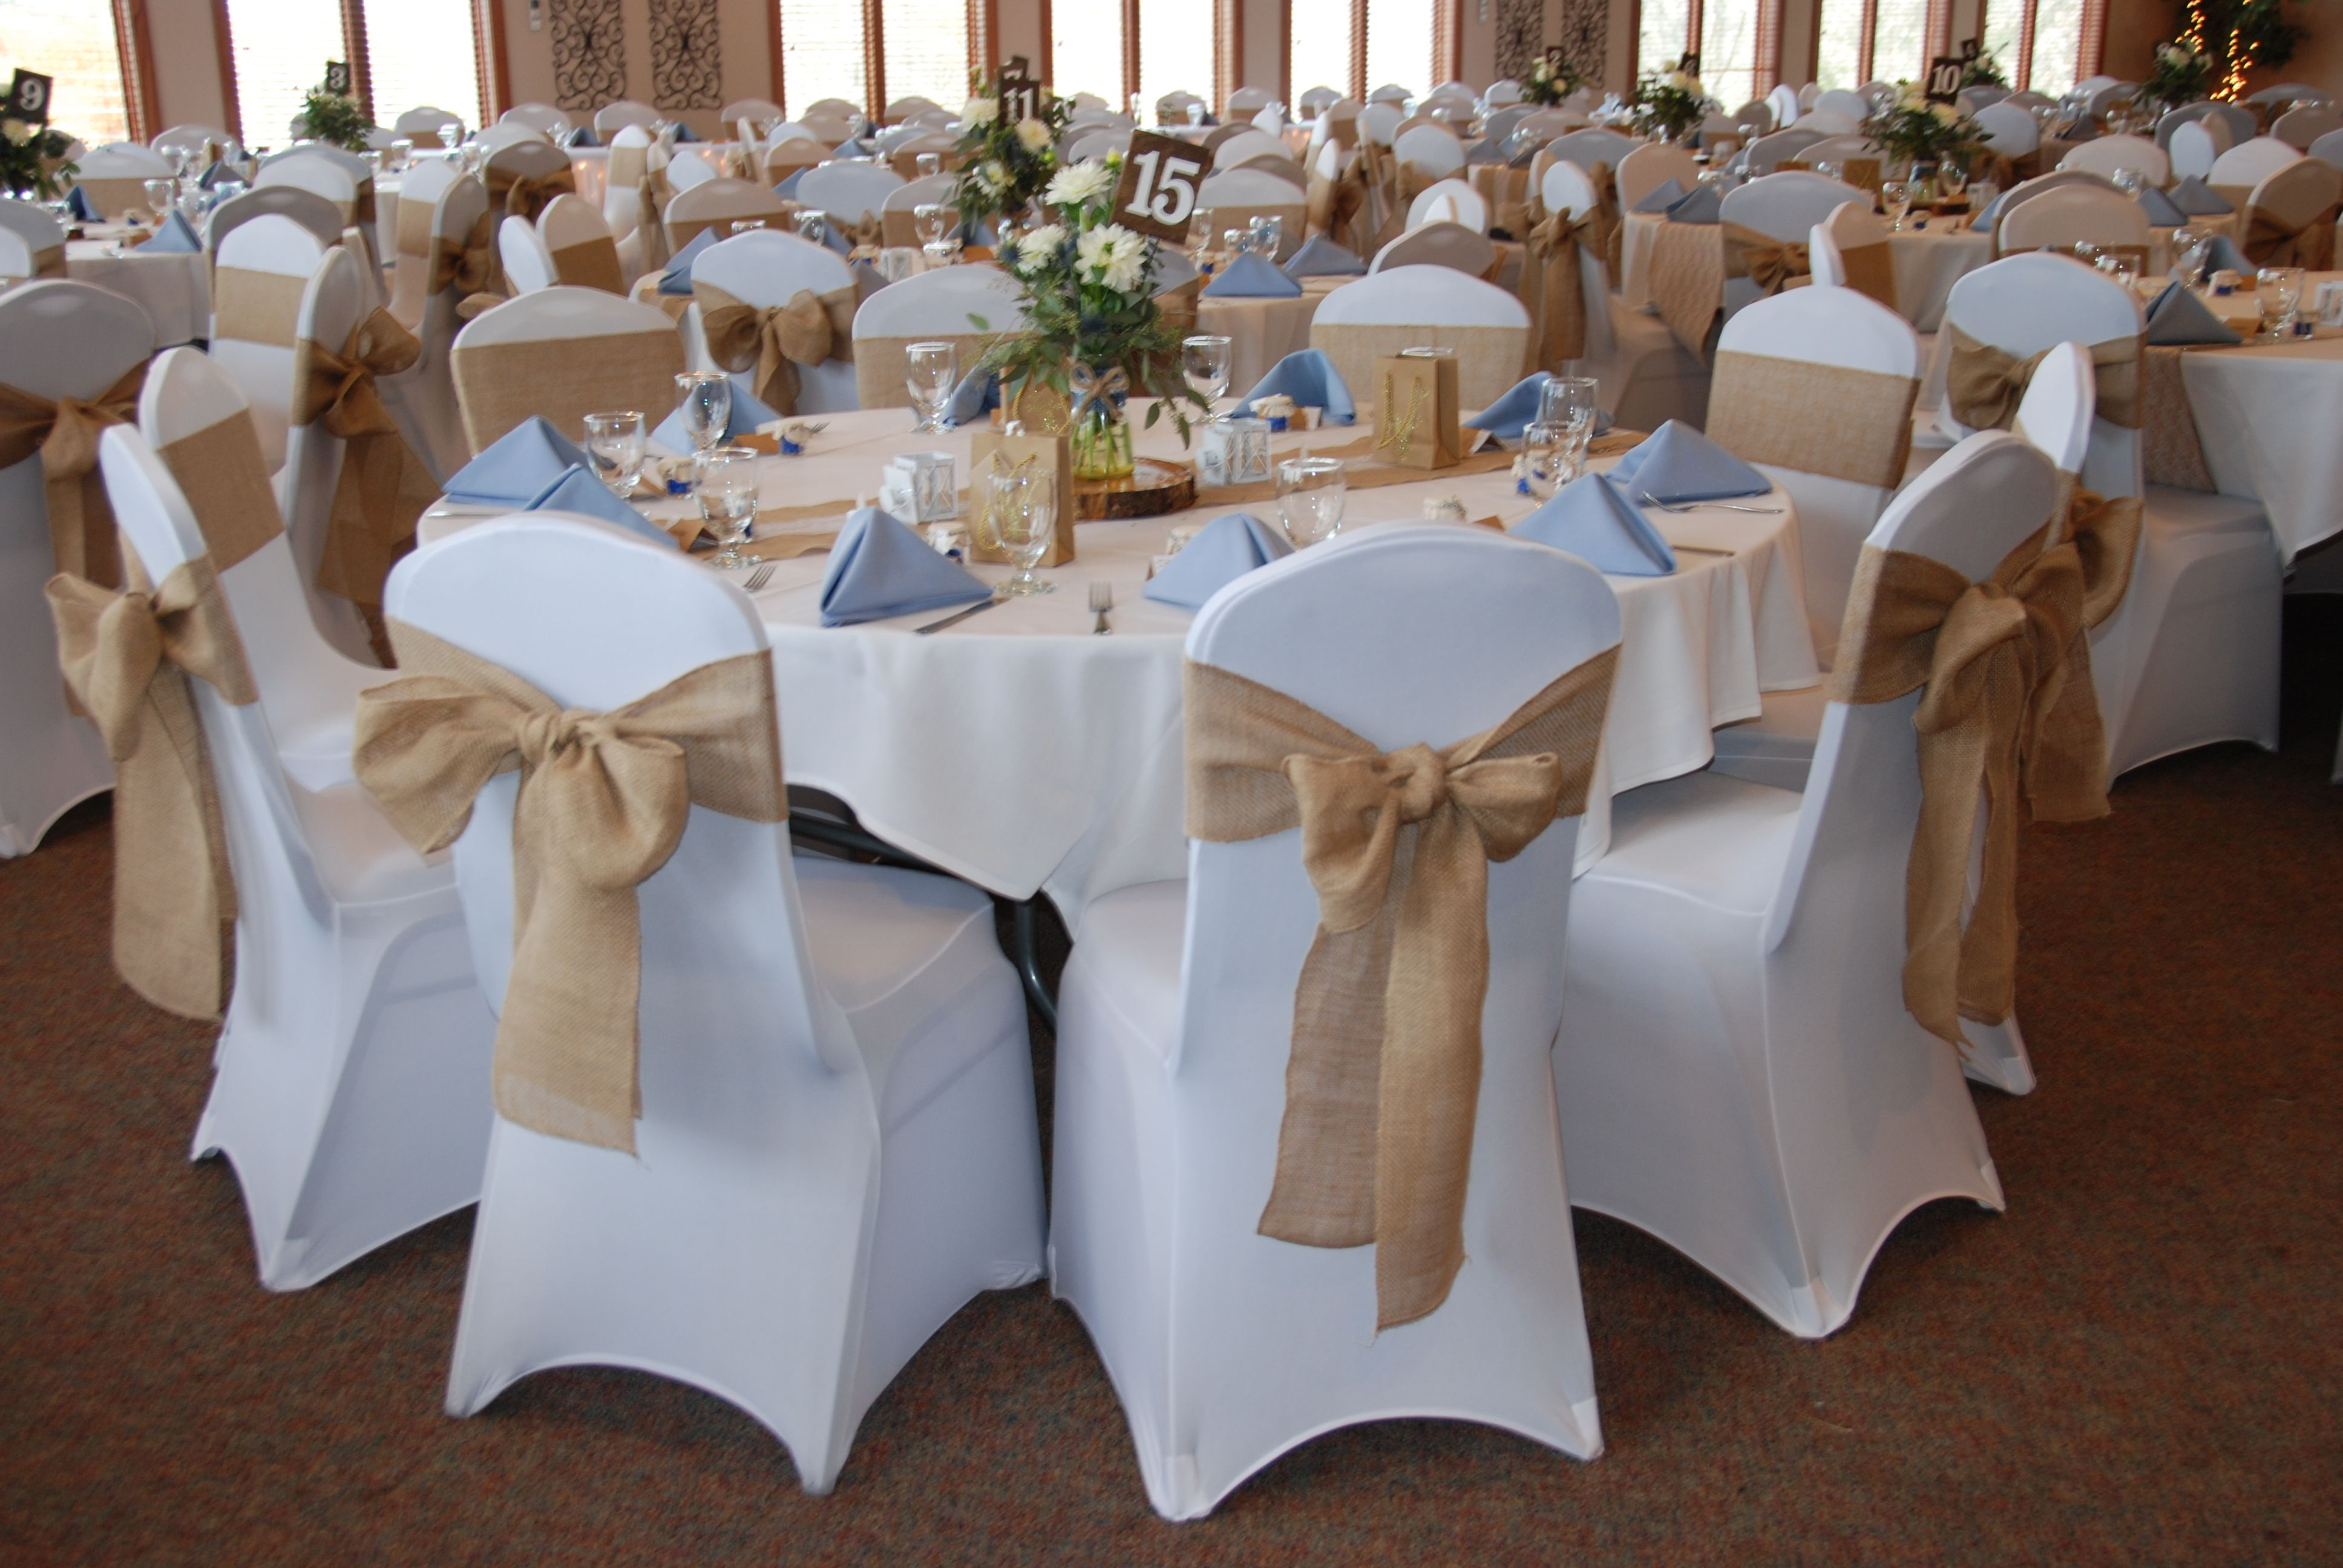 Burlap wedding accents  Wedding reception chairs, Wedding decor